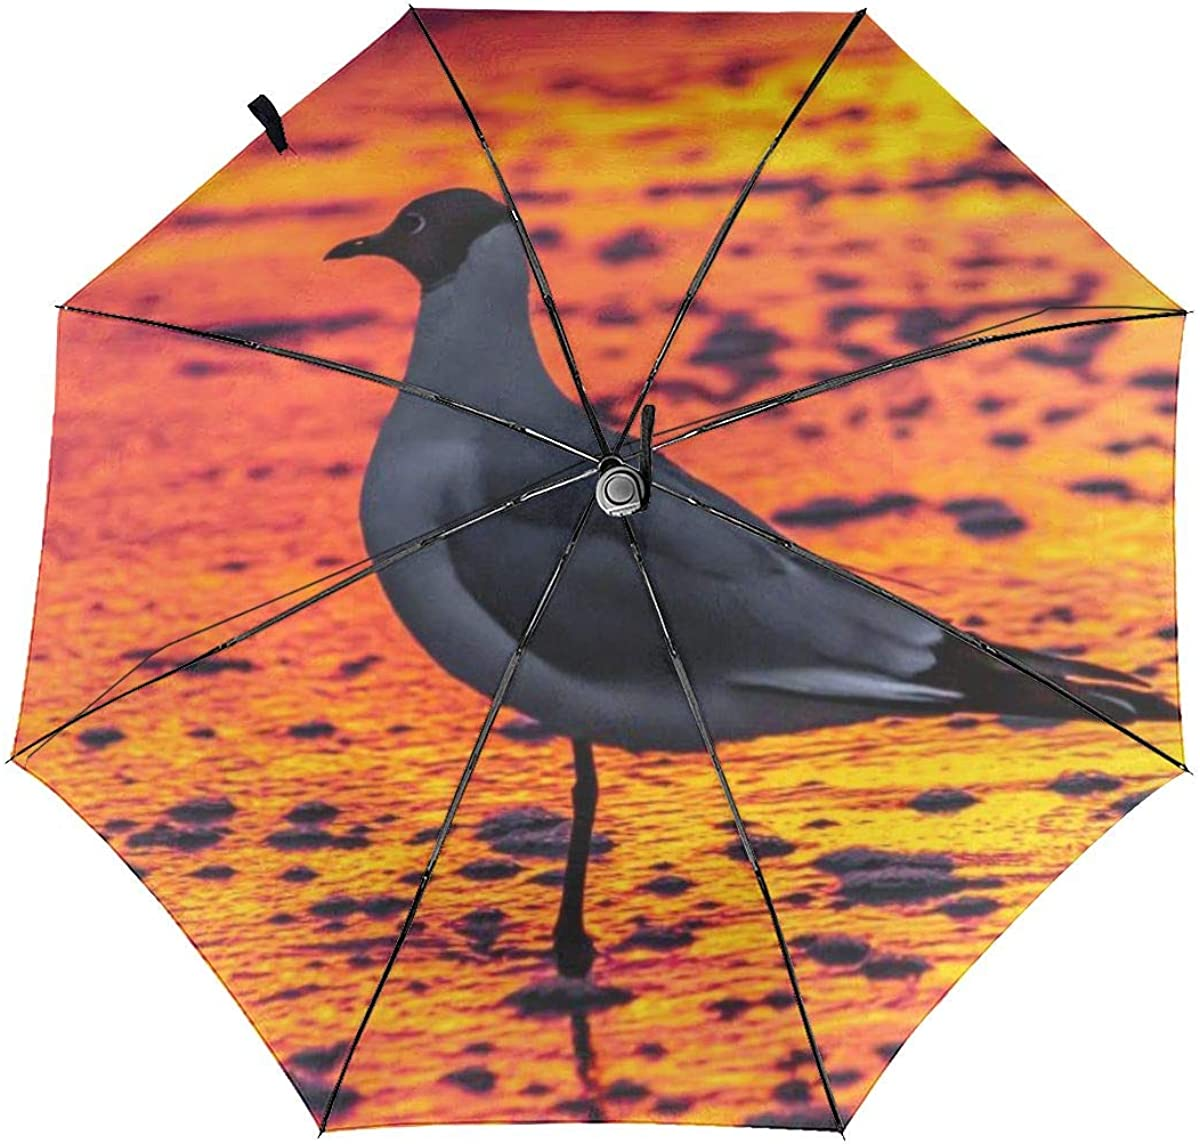 Seagull Afterglow Sunset Shadow Red Compact Travel Umbrella Windproof Reinforced Canopy 8 Ribs Umbrella Auto Open And Close Button Customized